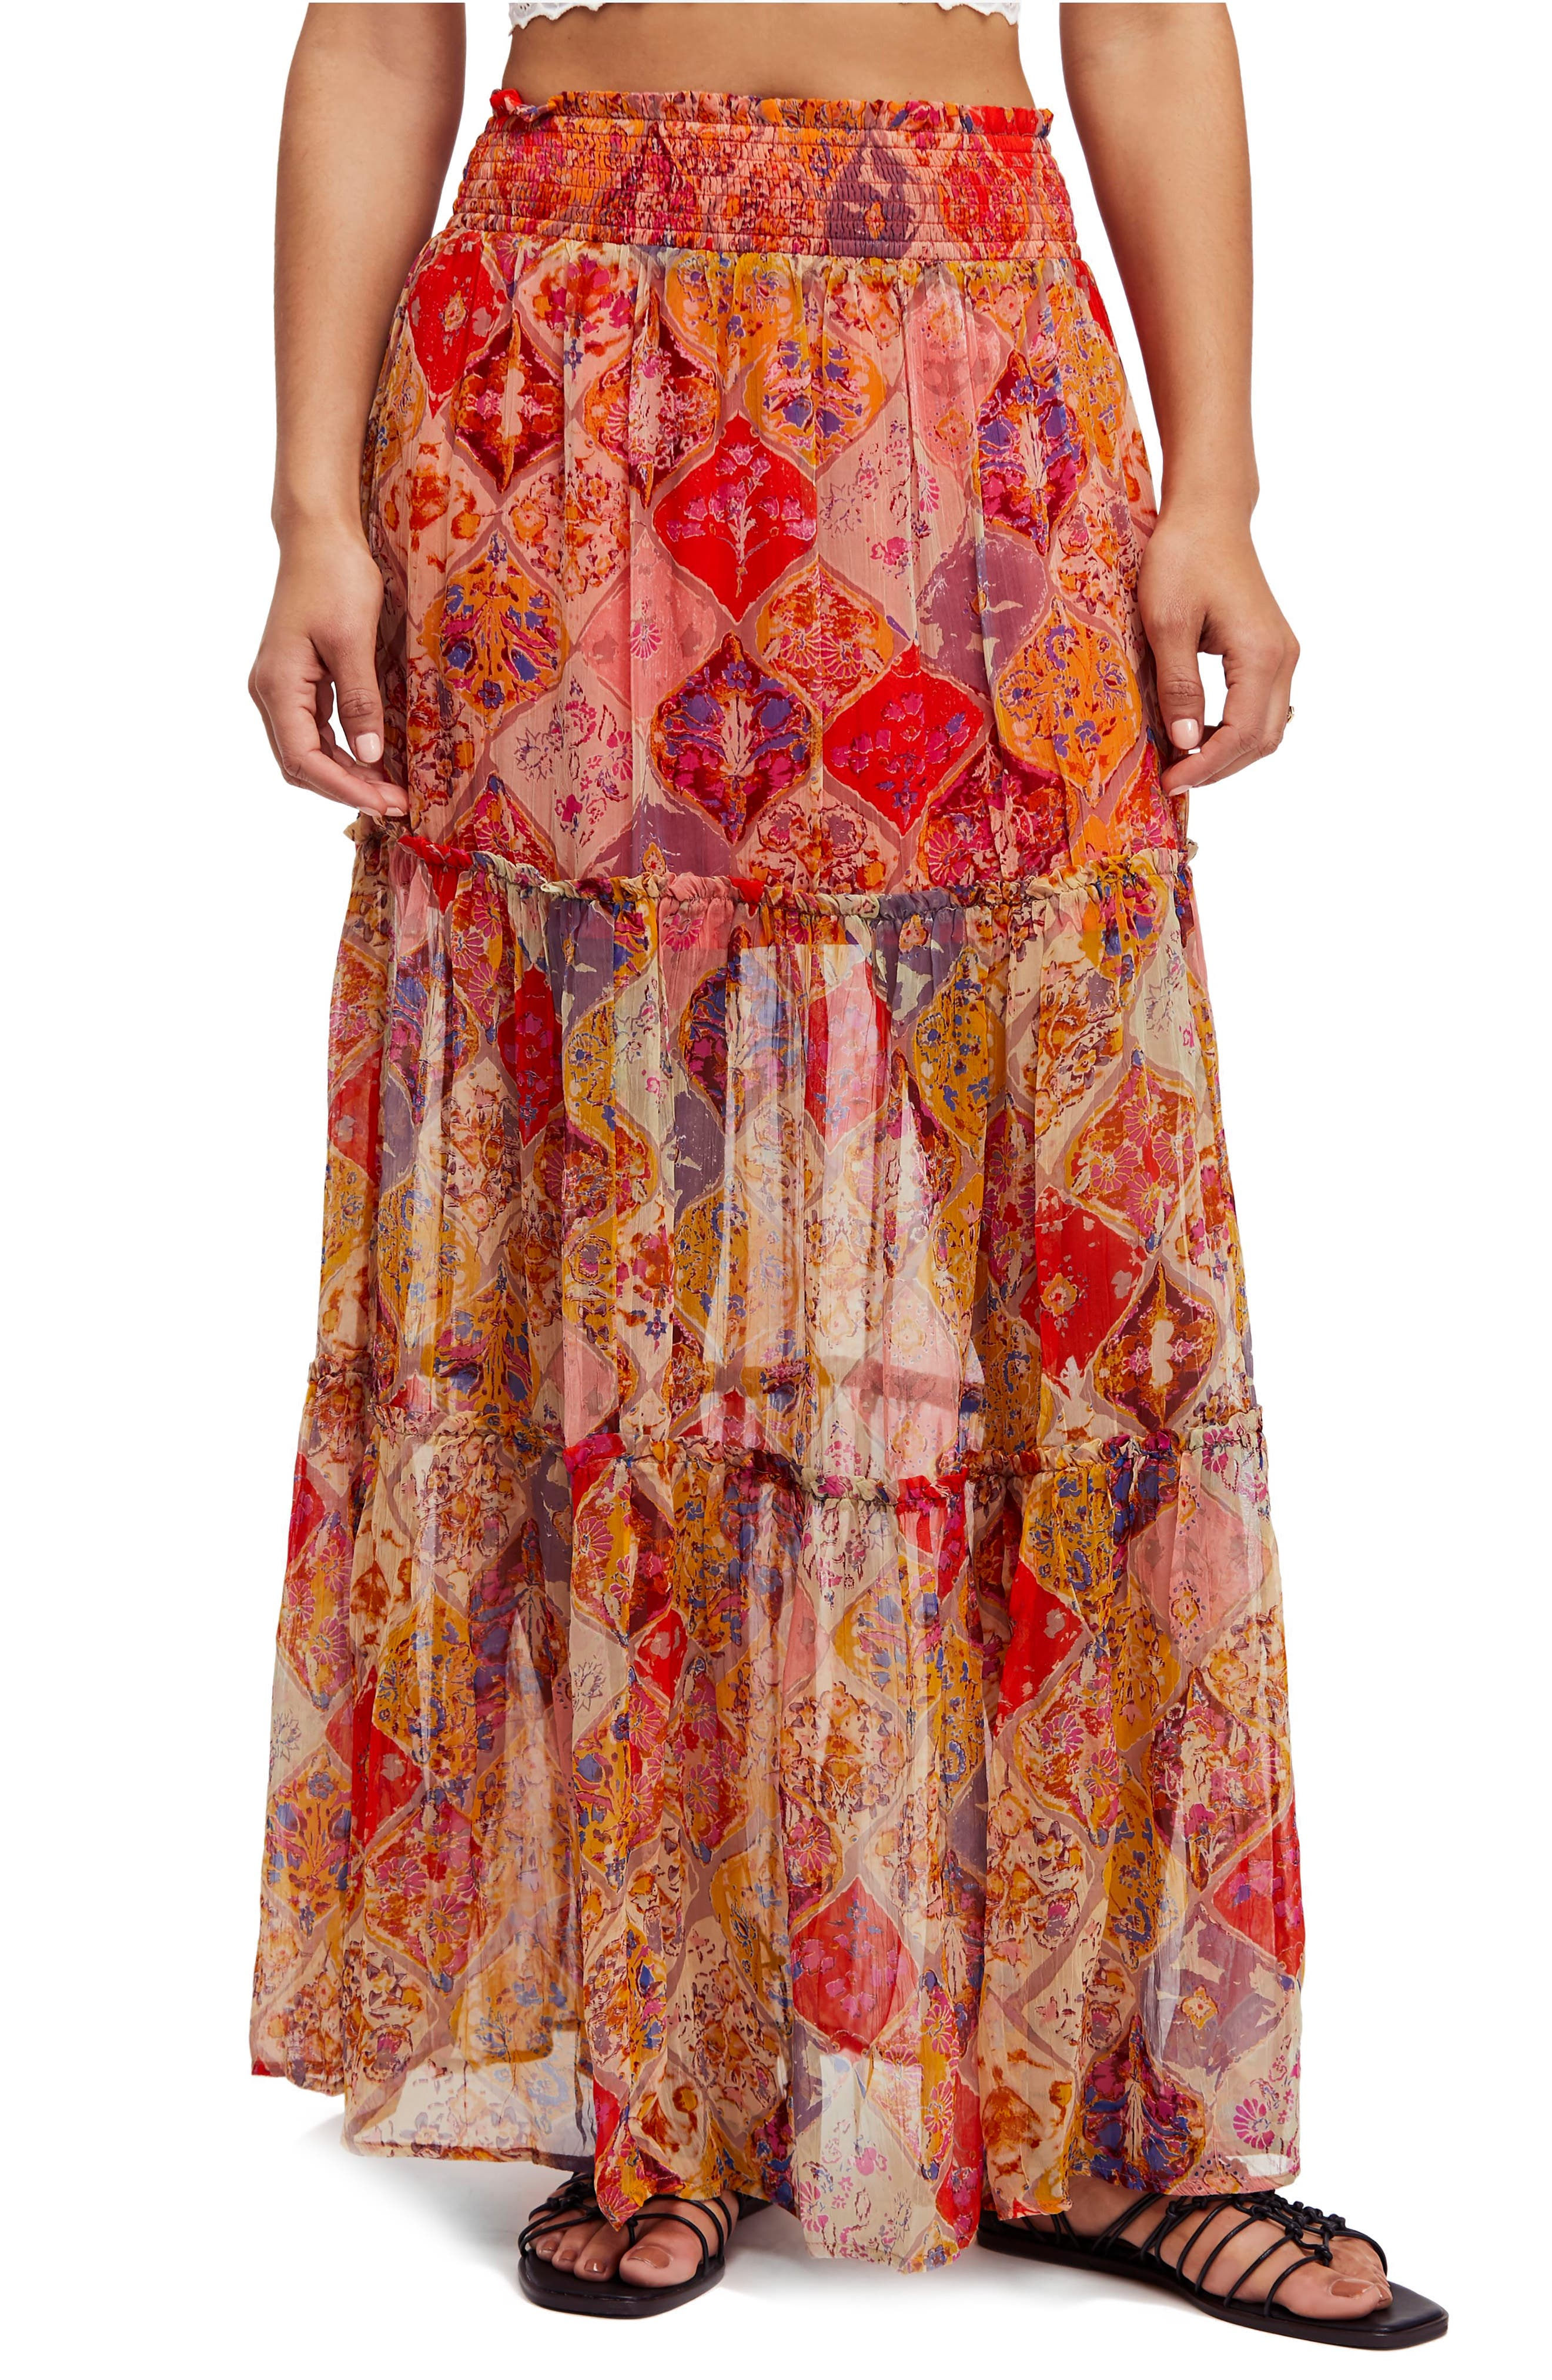 The Great Escape Print Maxi Skirt,                             Main thumbnail 1, color,                             800